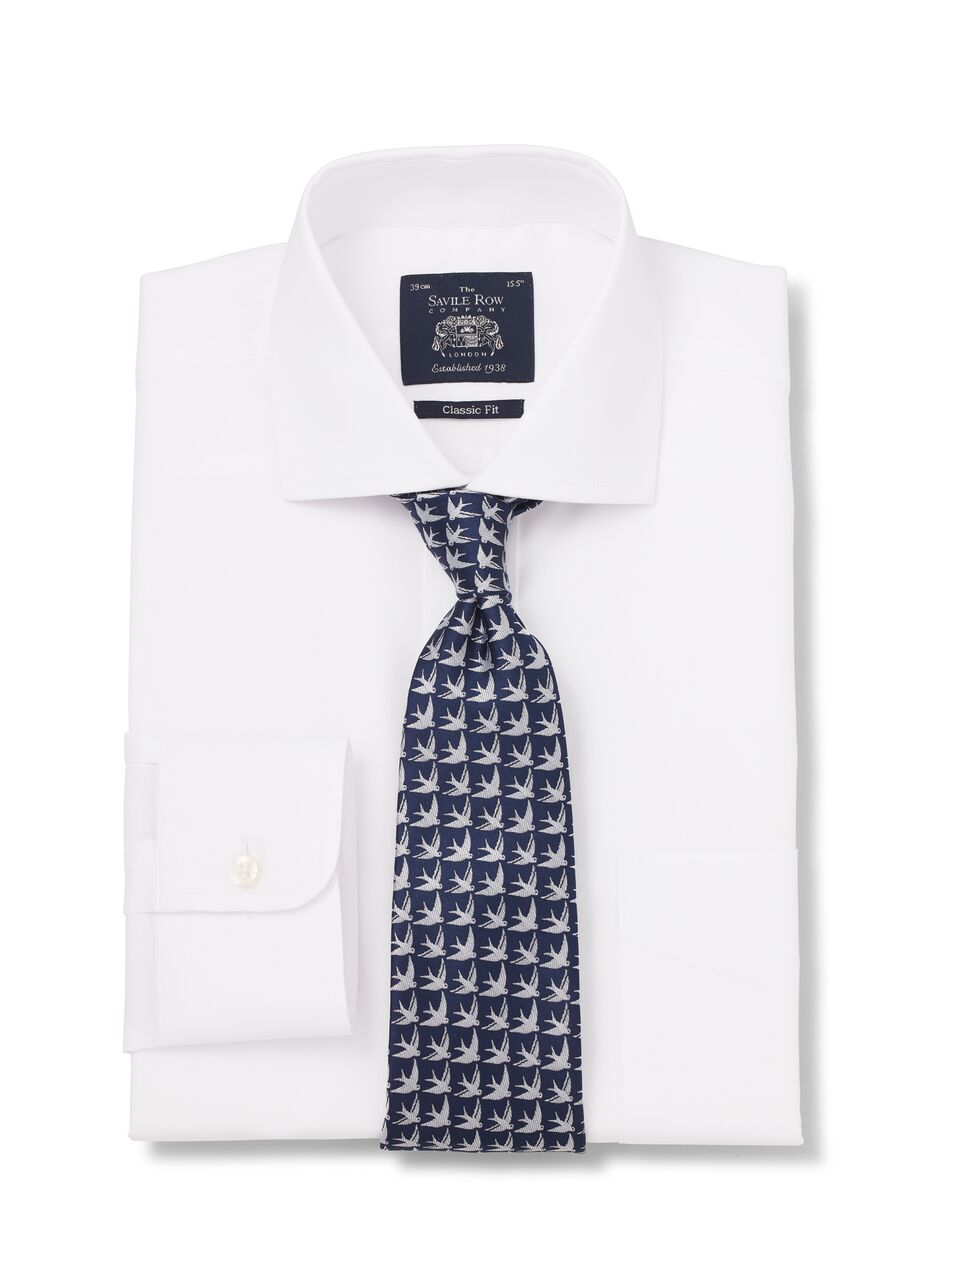 WHITE PINPOINT CLASSIC FIT SHIRT SINGLE CUFF-1117wht